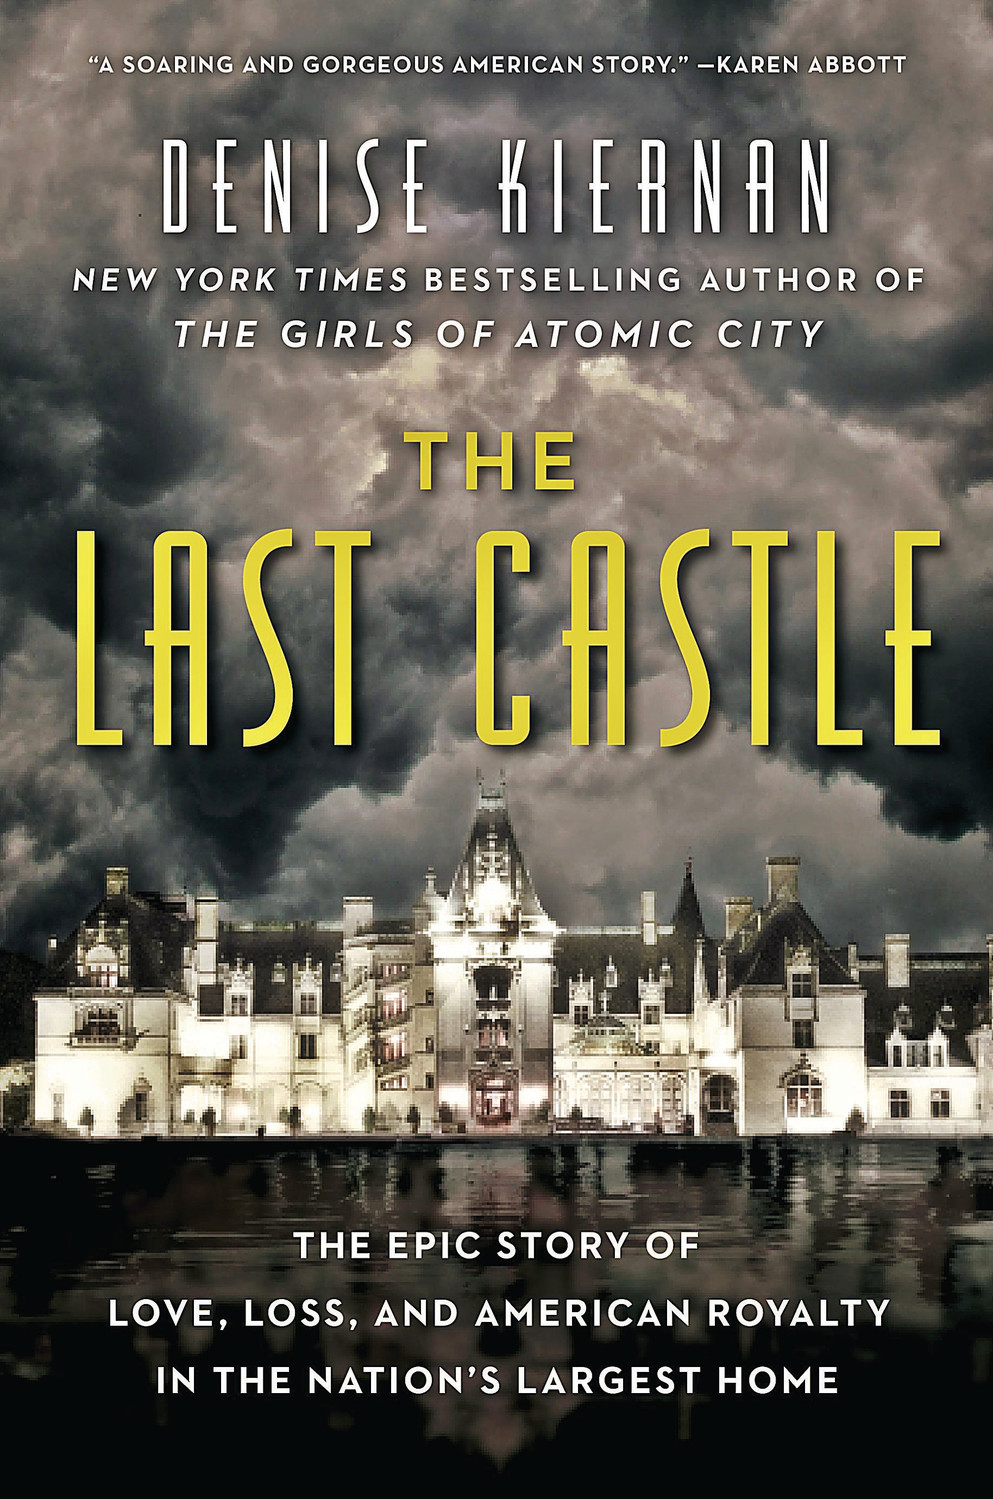 The Last Castle- The Epic Story of Love, Loss, and American Royalty in the Nation's Largest Home by denise kiernan.jpg